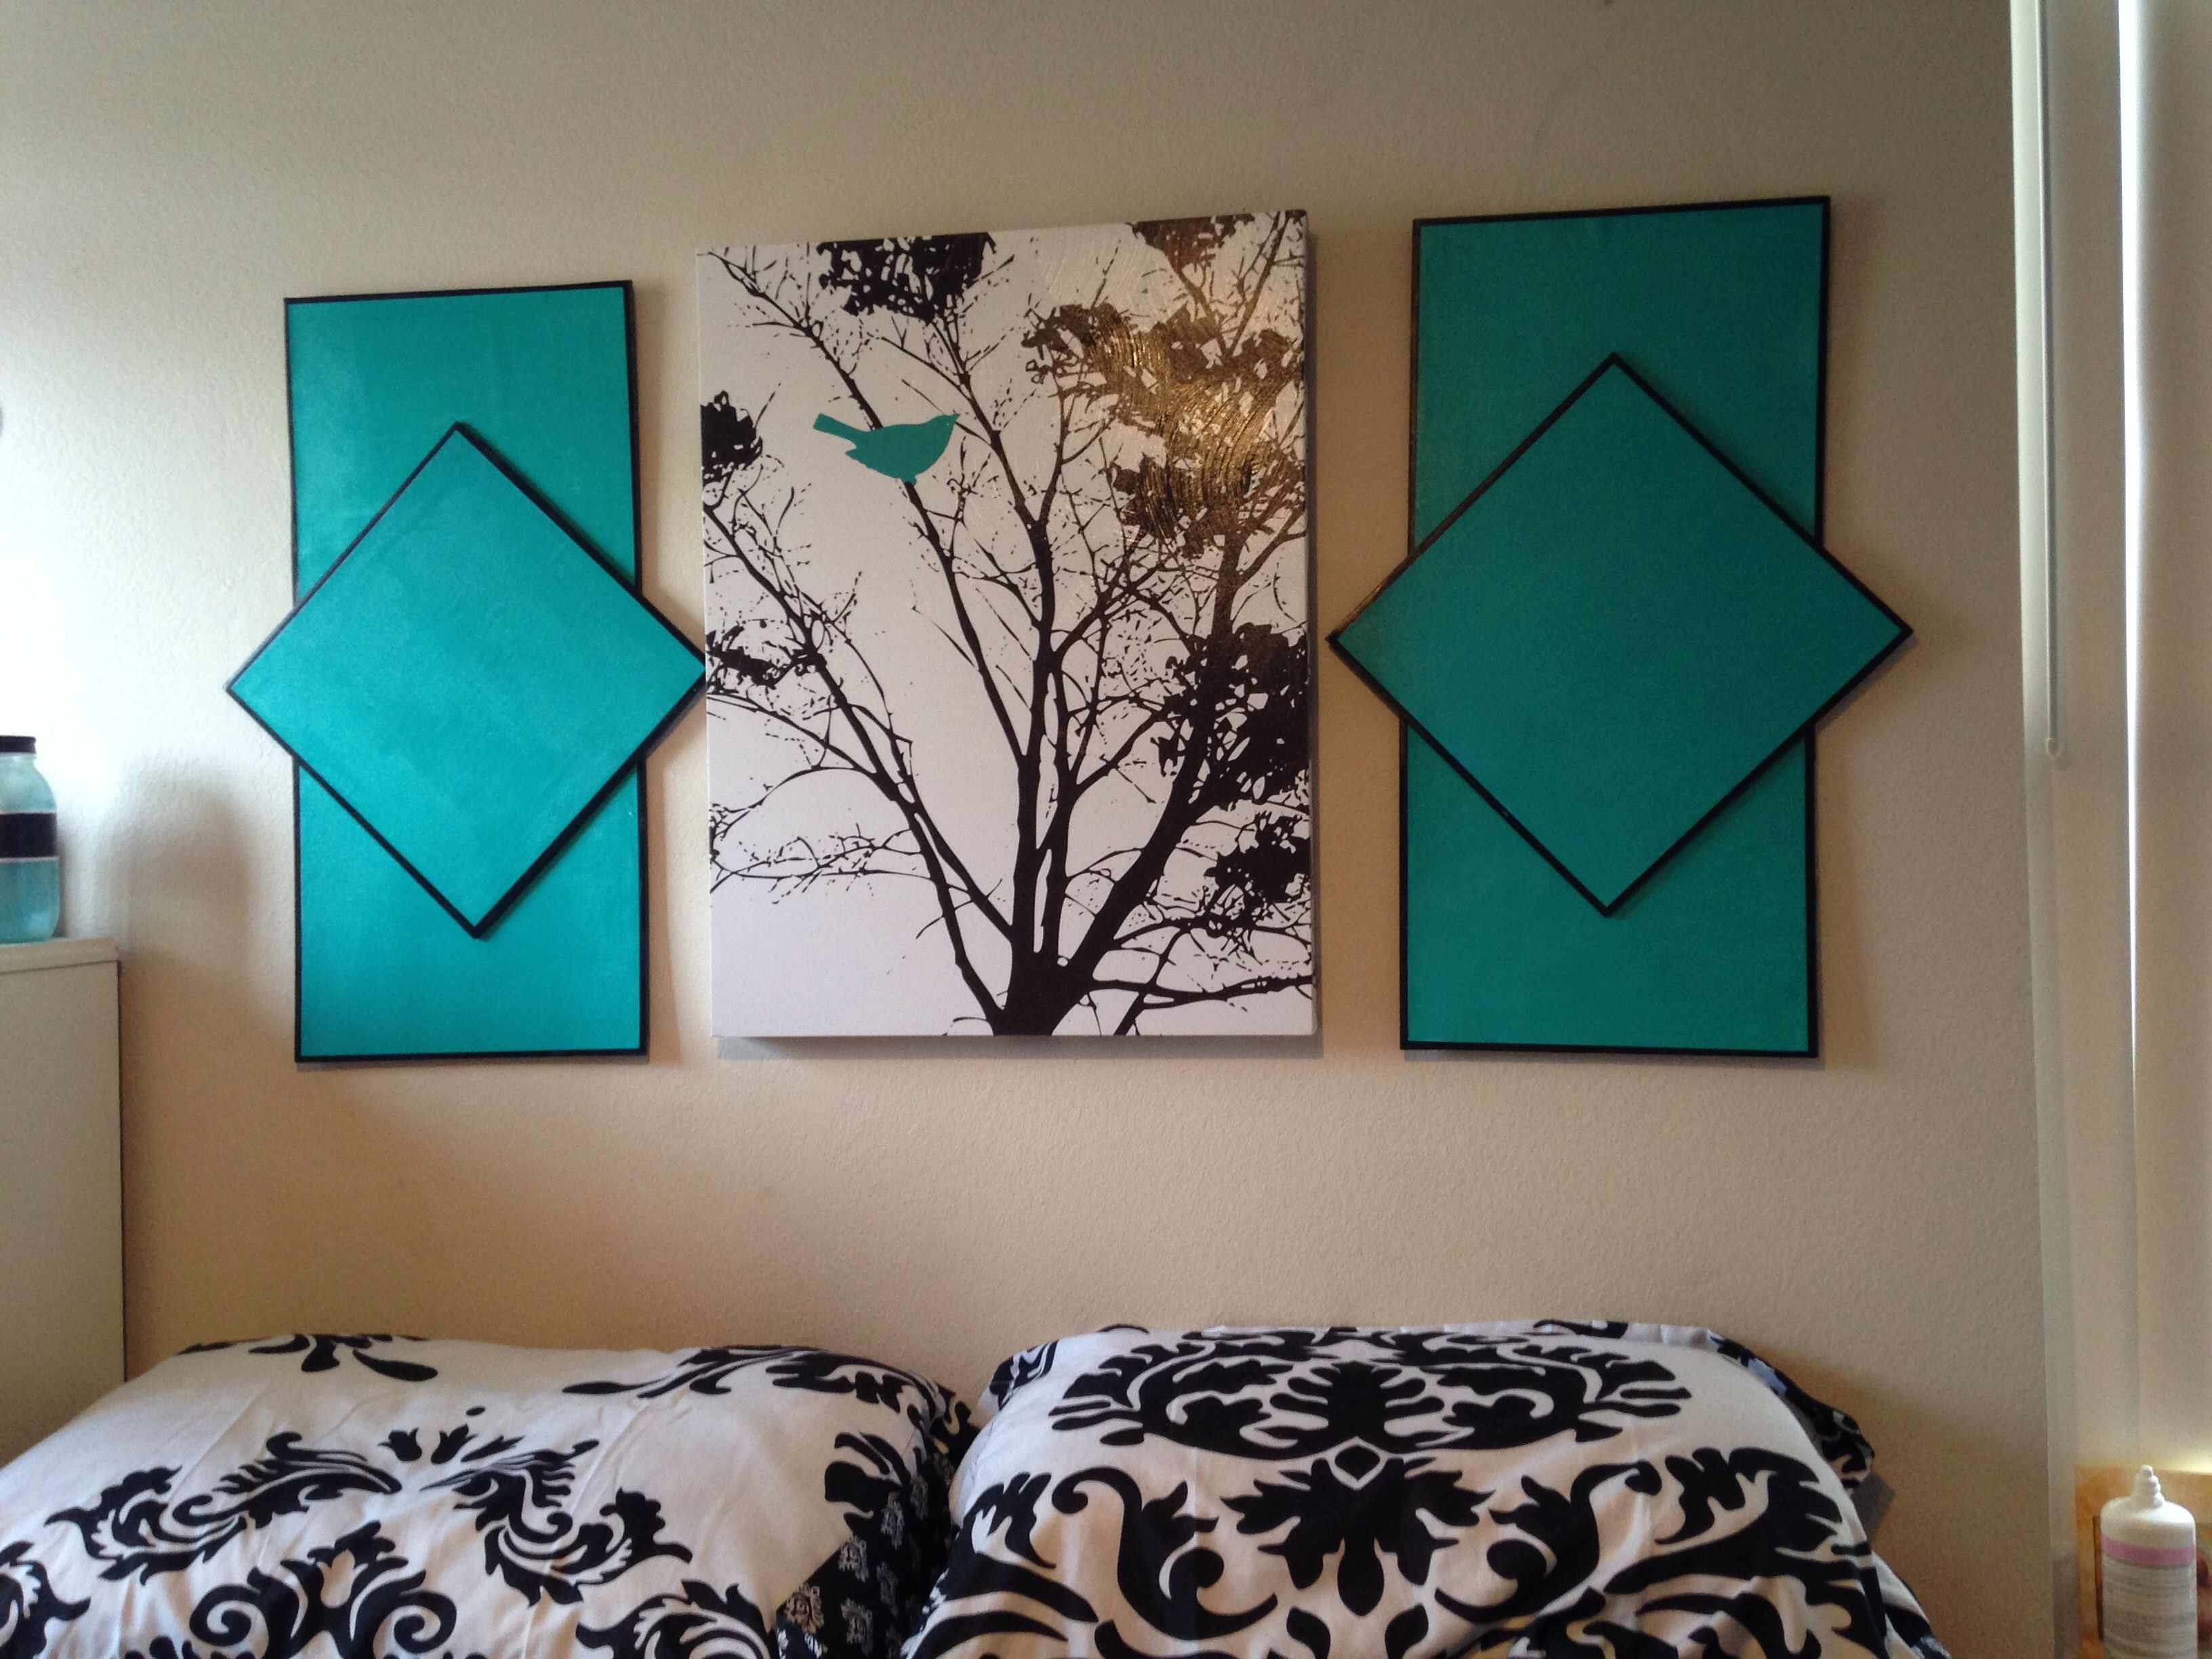 DIY headboard! Bought the middle picture from hobby lobby